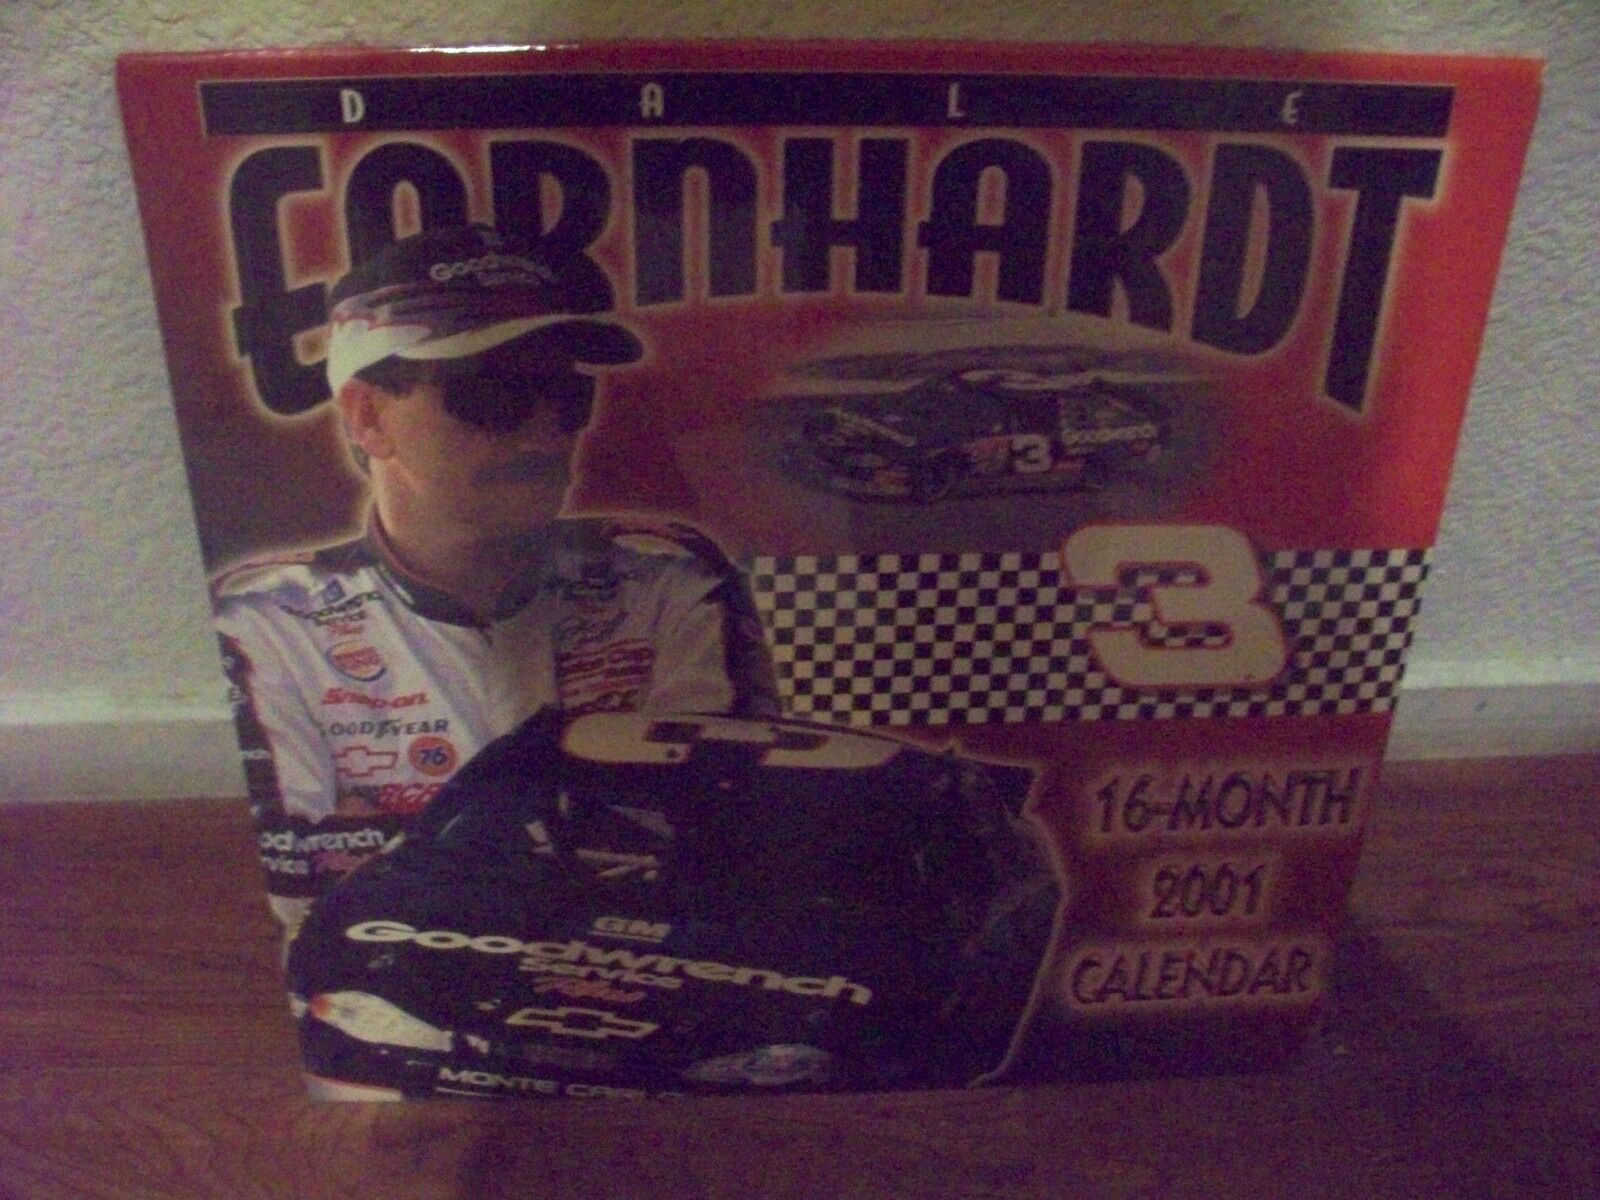 LOW   NICE COLLETABLE  DALE EARNHARDT 2001 CALENDAR 16 MONTH SEALED NEW VINGAGE